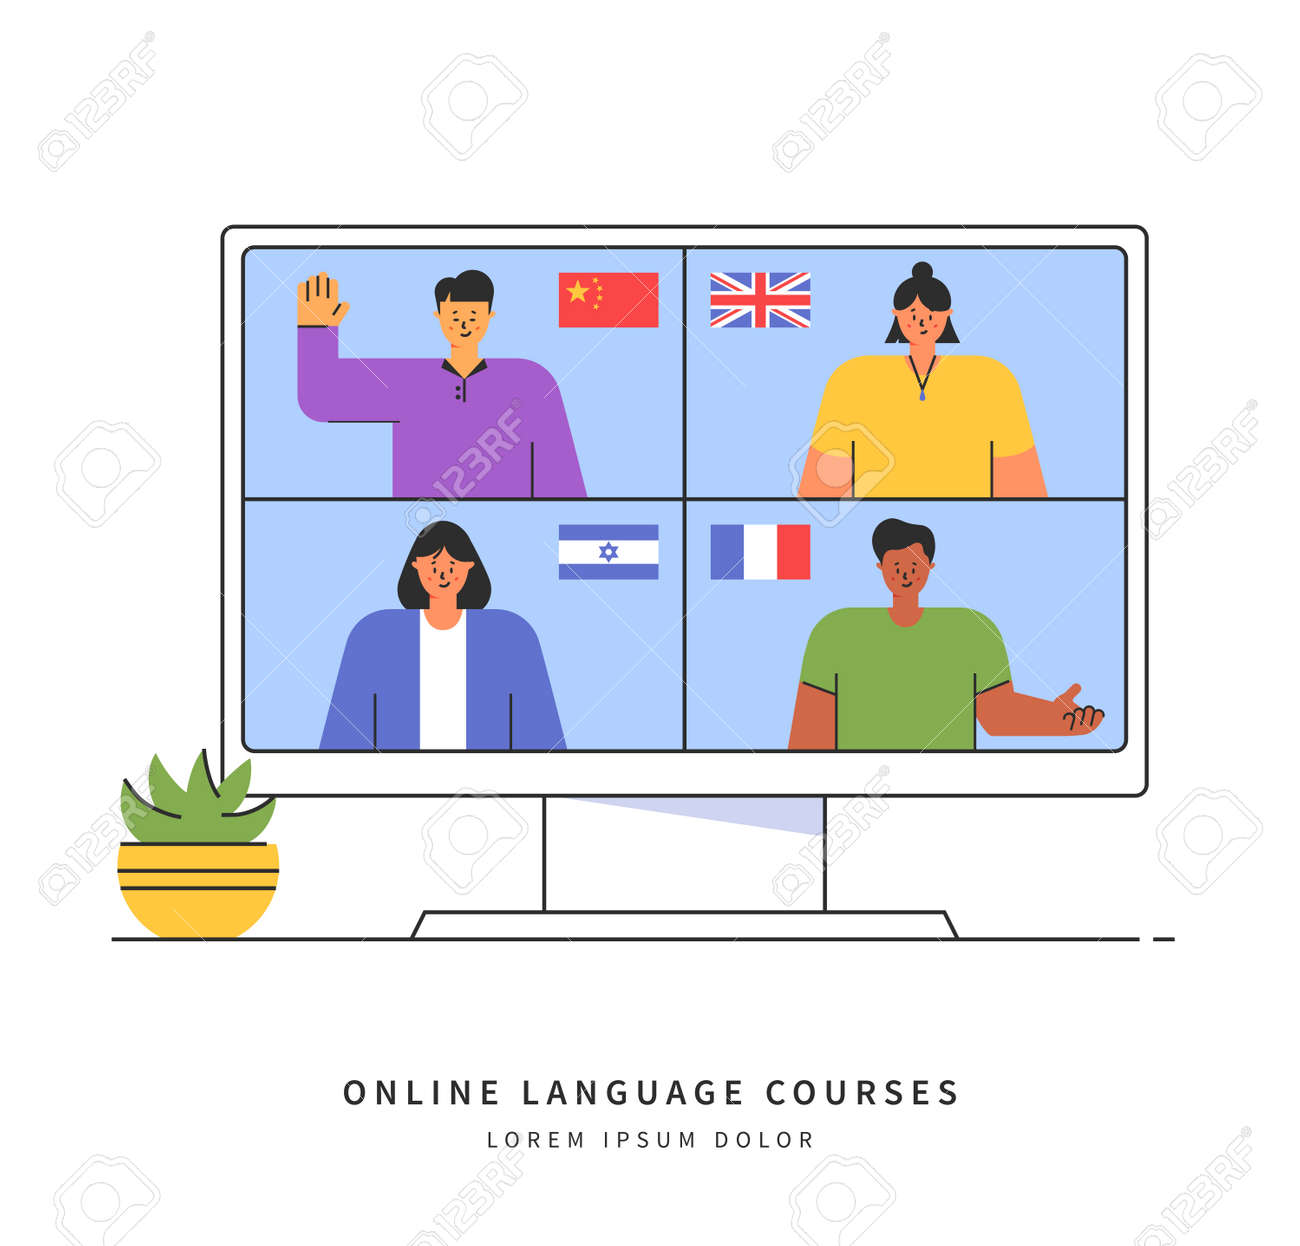 E-learning of the foreign languages. Distance online education concept. Teachers from different countries give lessons on the website. Modern vector illustration isolated on white background. - 158224793